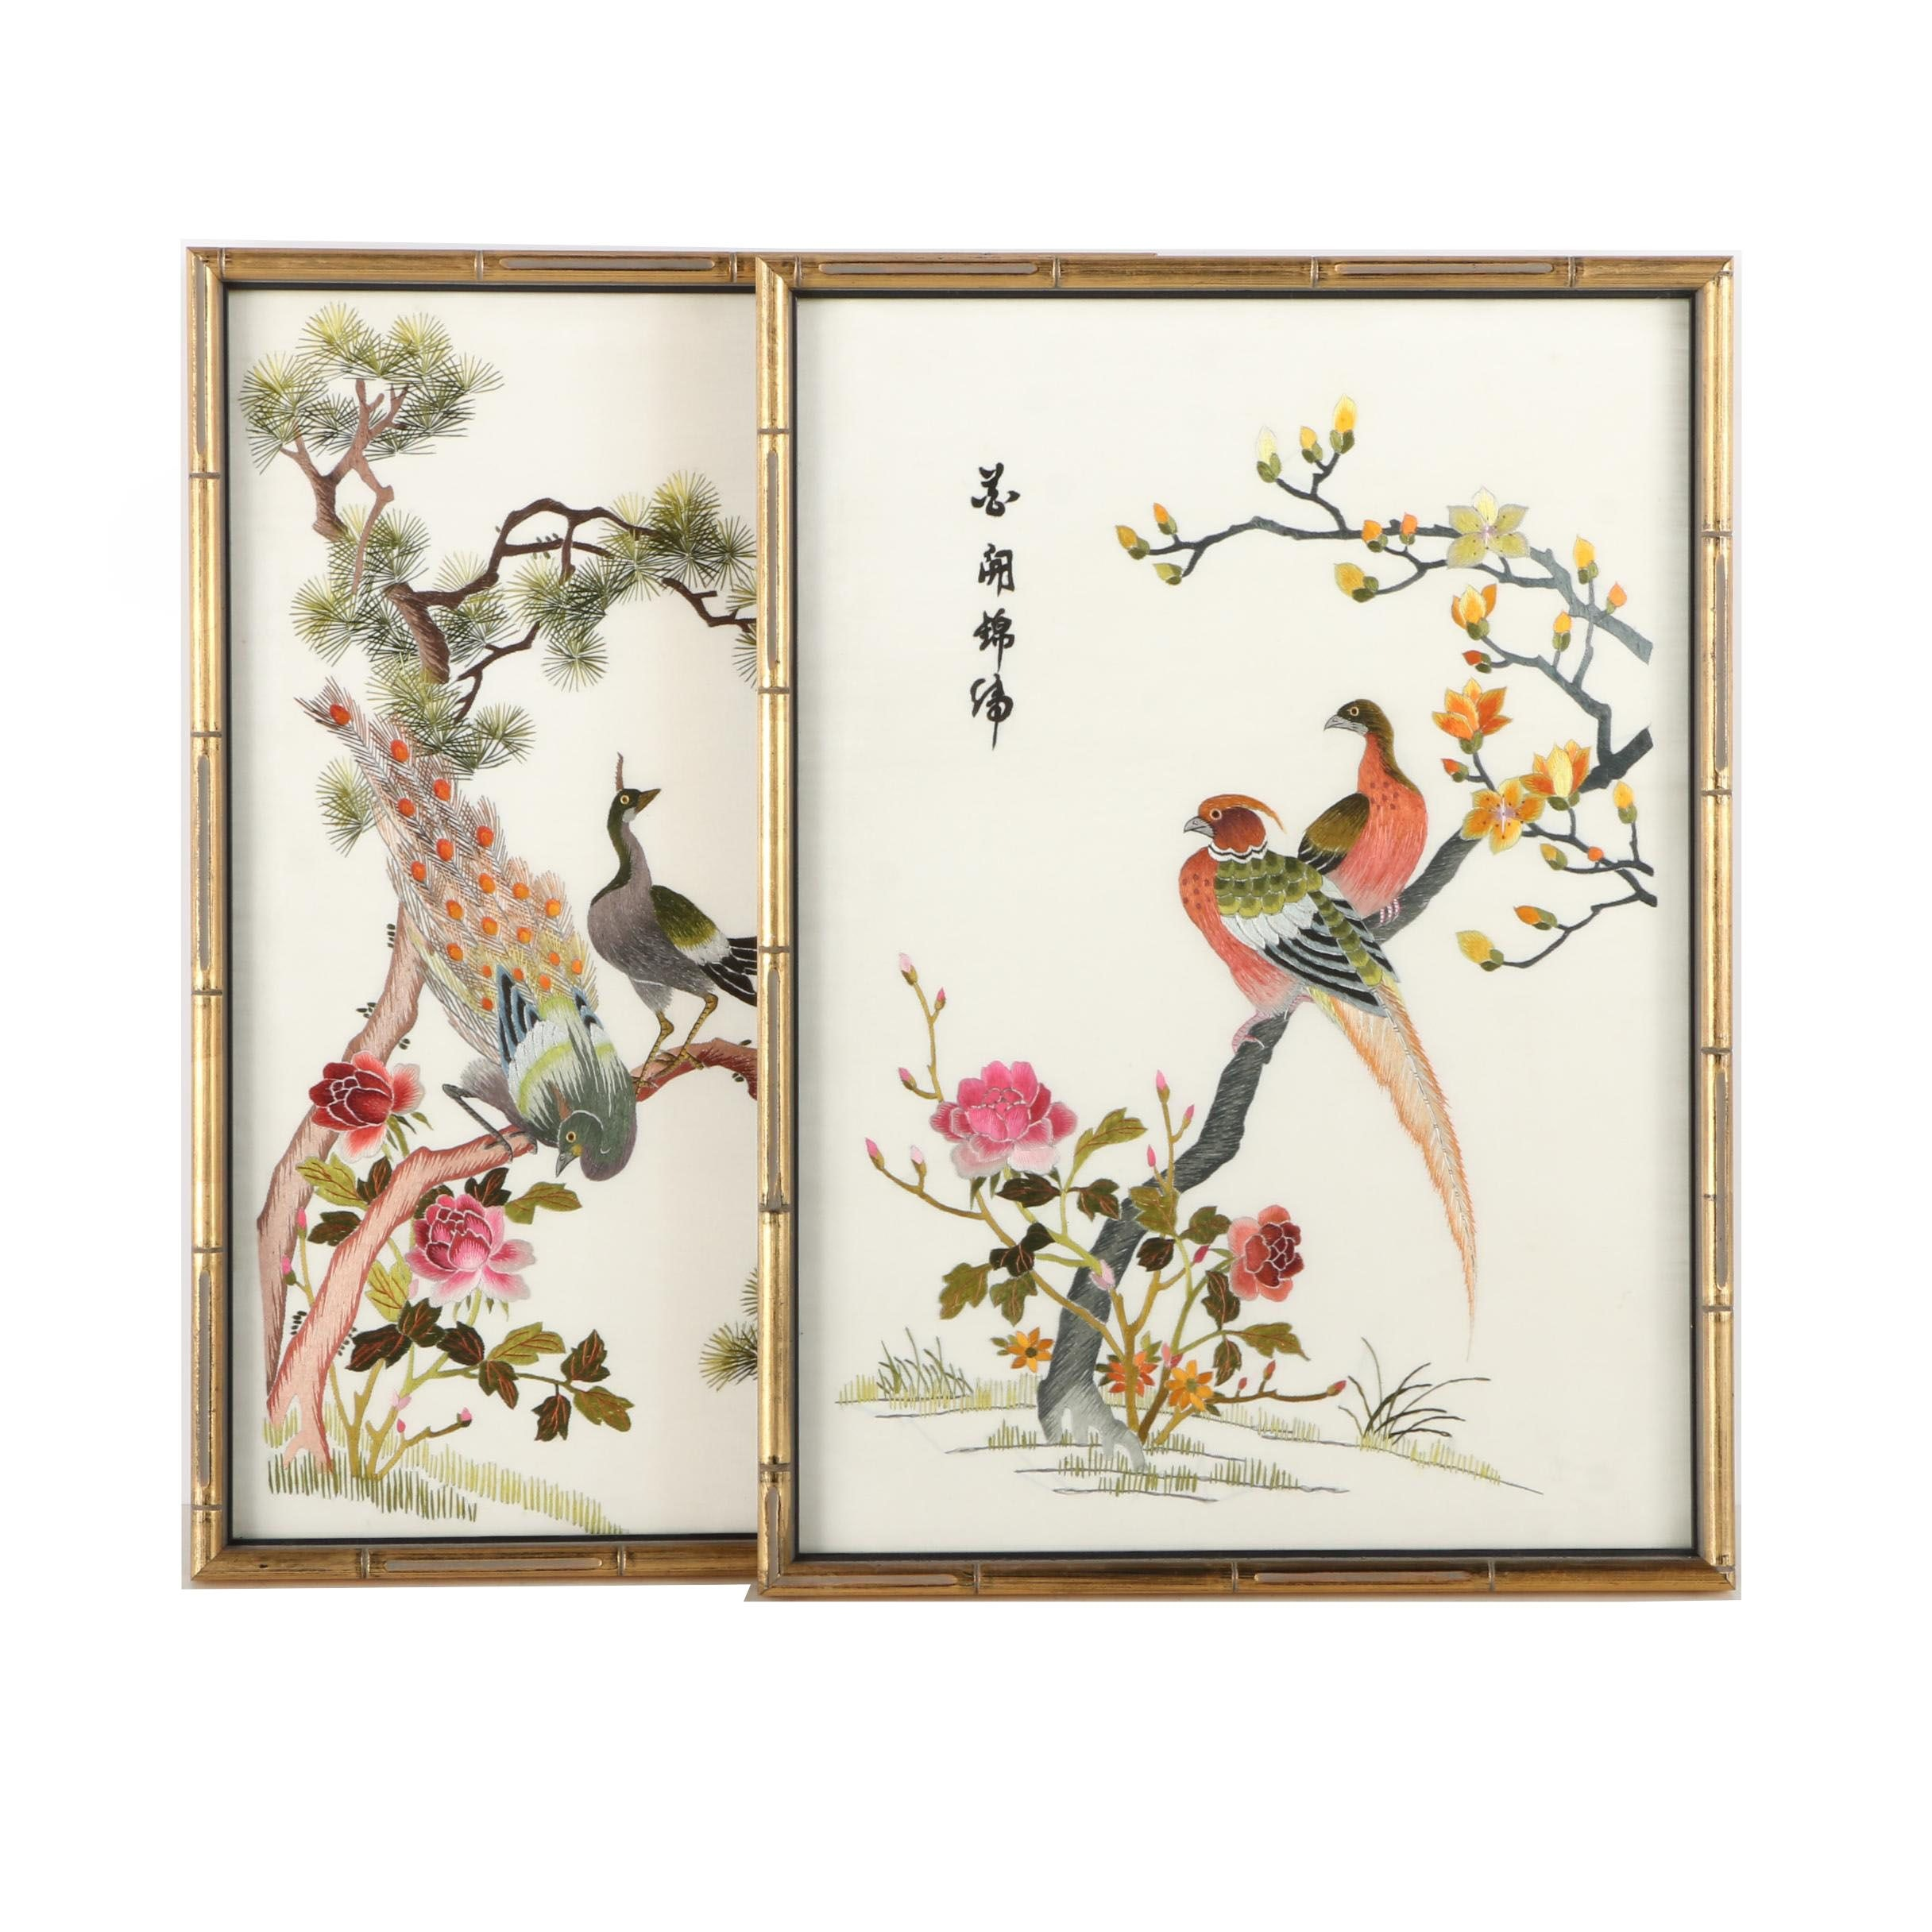 Chinese Embroideries on Silk With Birds, Trees, and Flowers